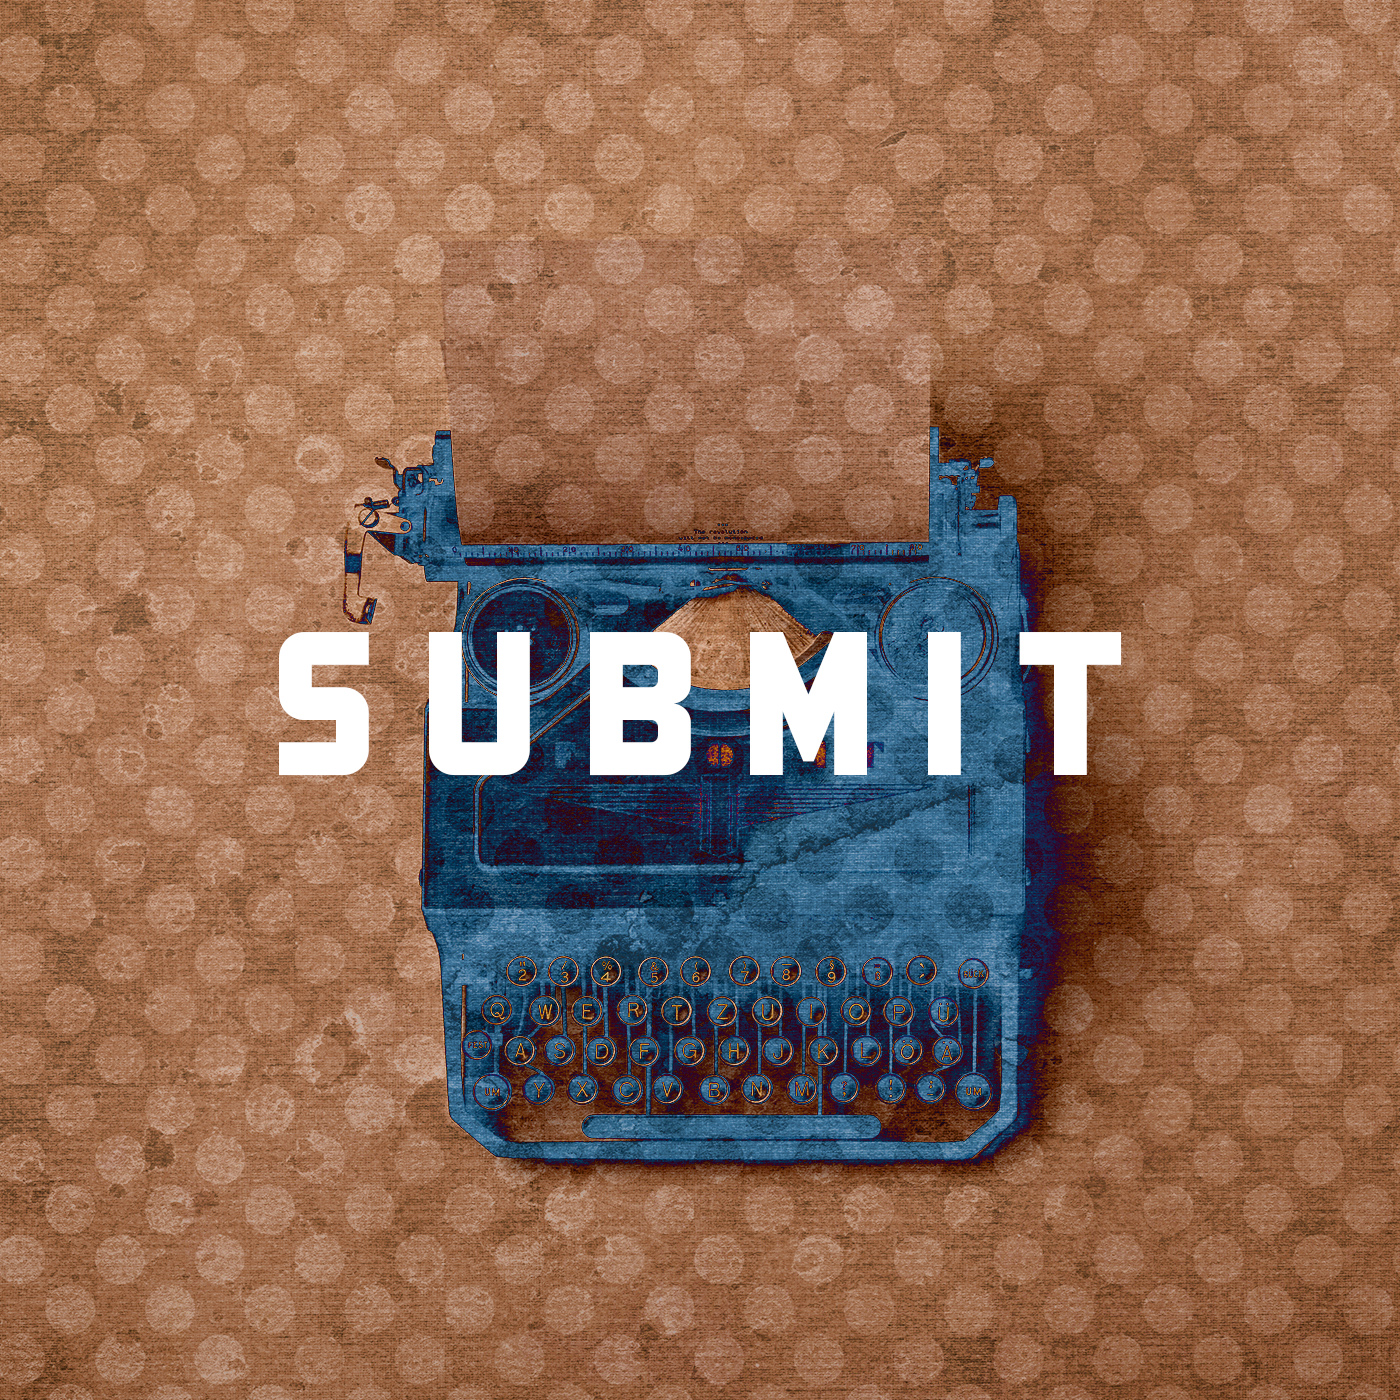 Click here to contribute essays, poetry, or book reviews.